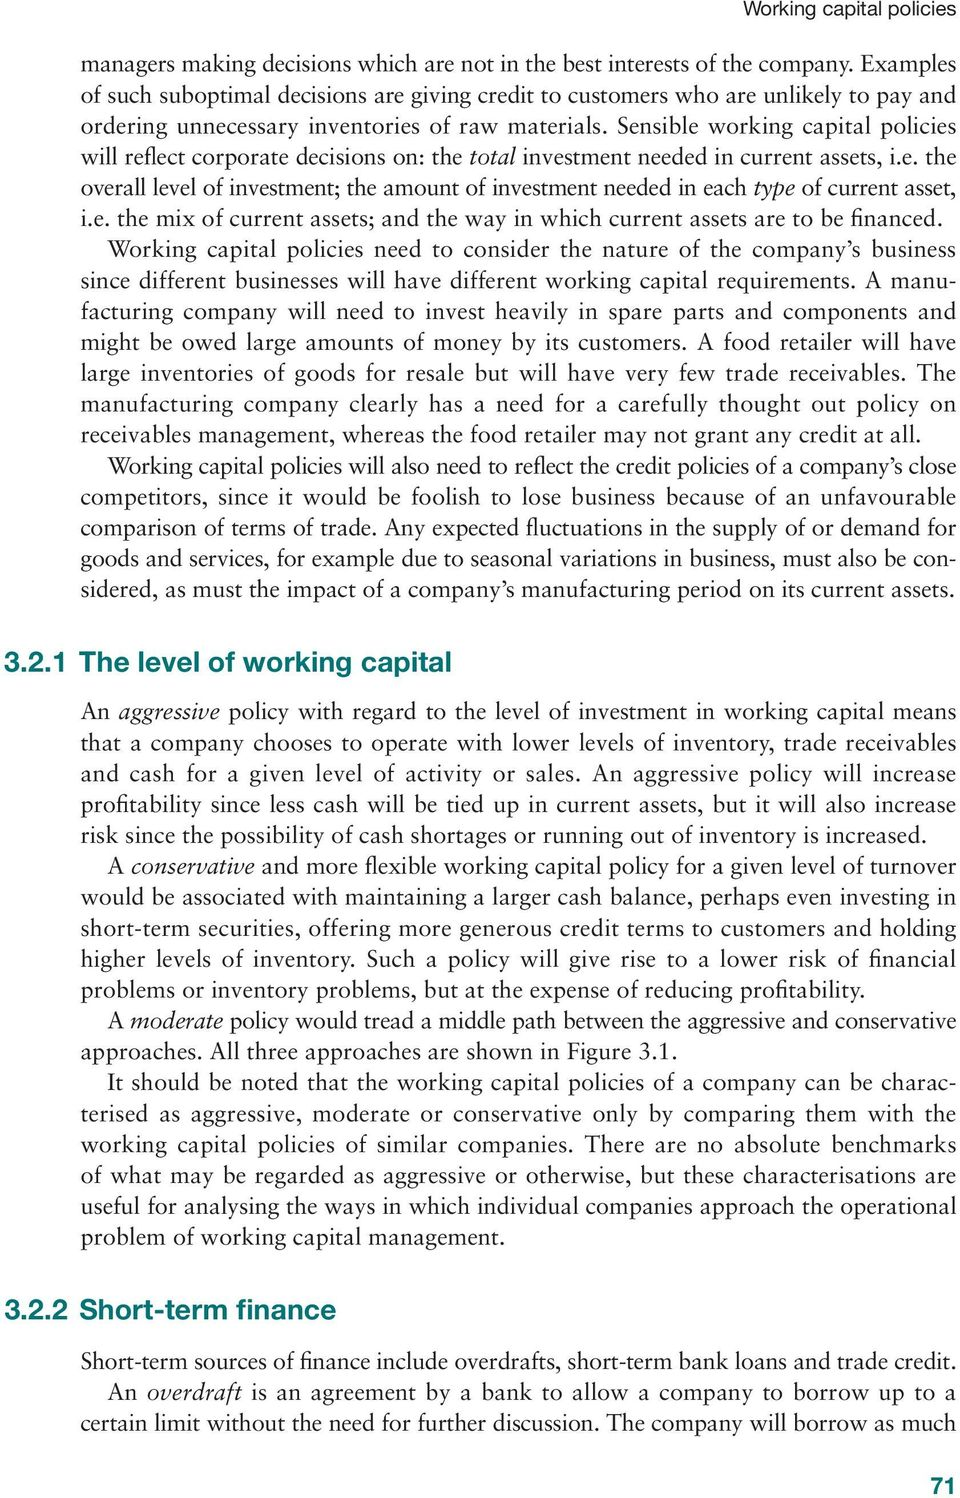 Sensible working capital policies will reflect corporate decisions on: the total investment needed in current assets, i.e. the overall level of investment; the amount of investment needed in each type of current asset, i.